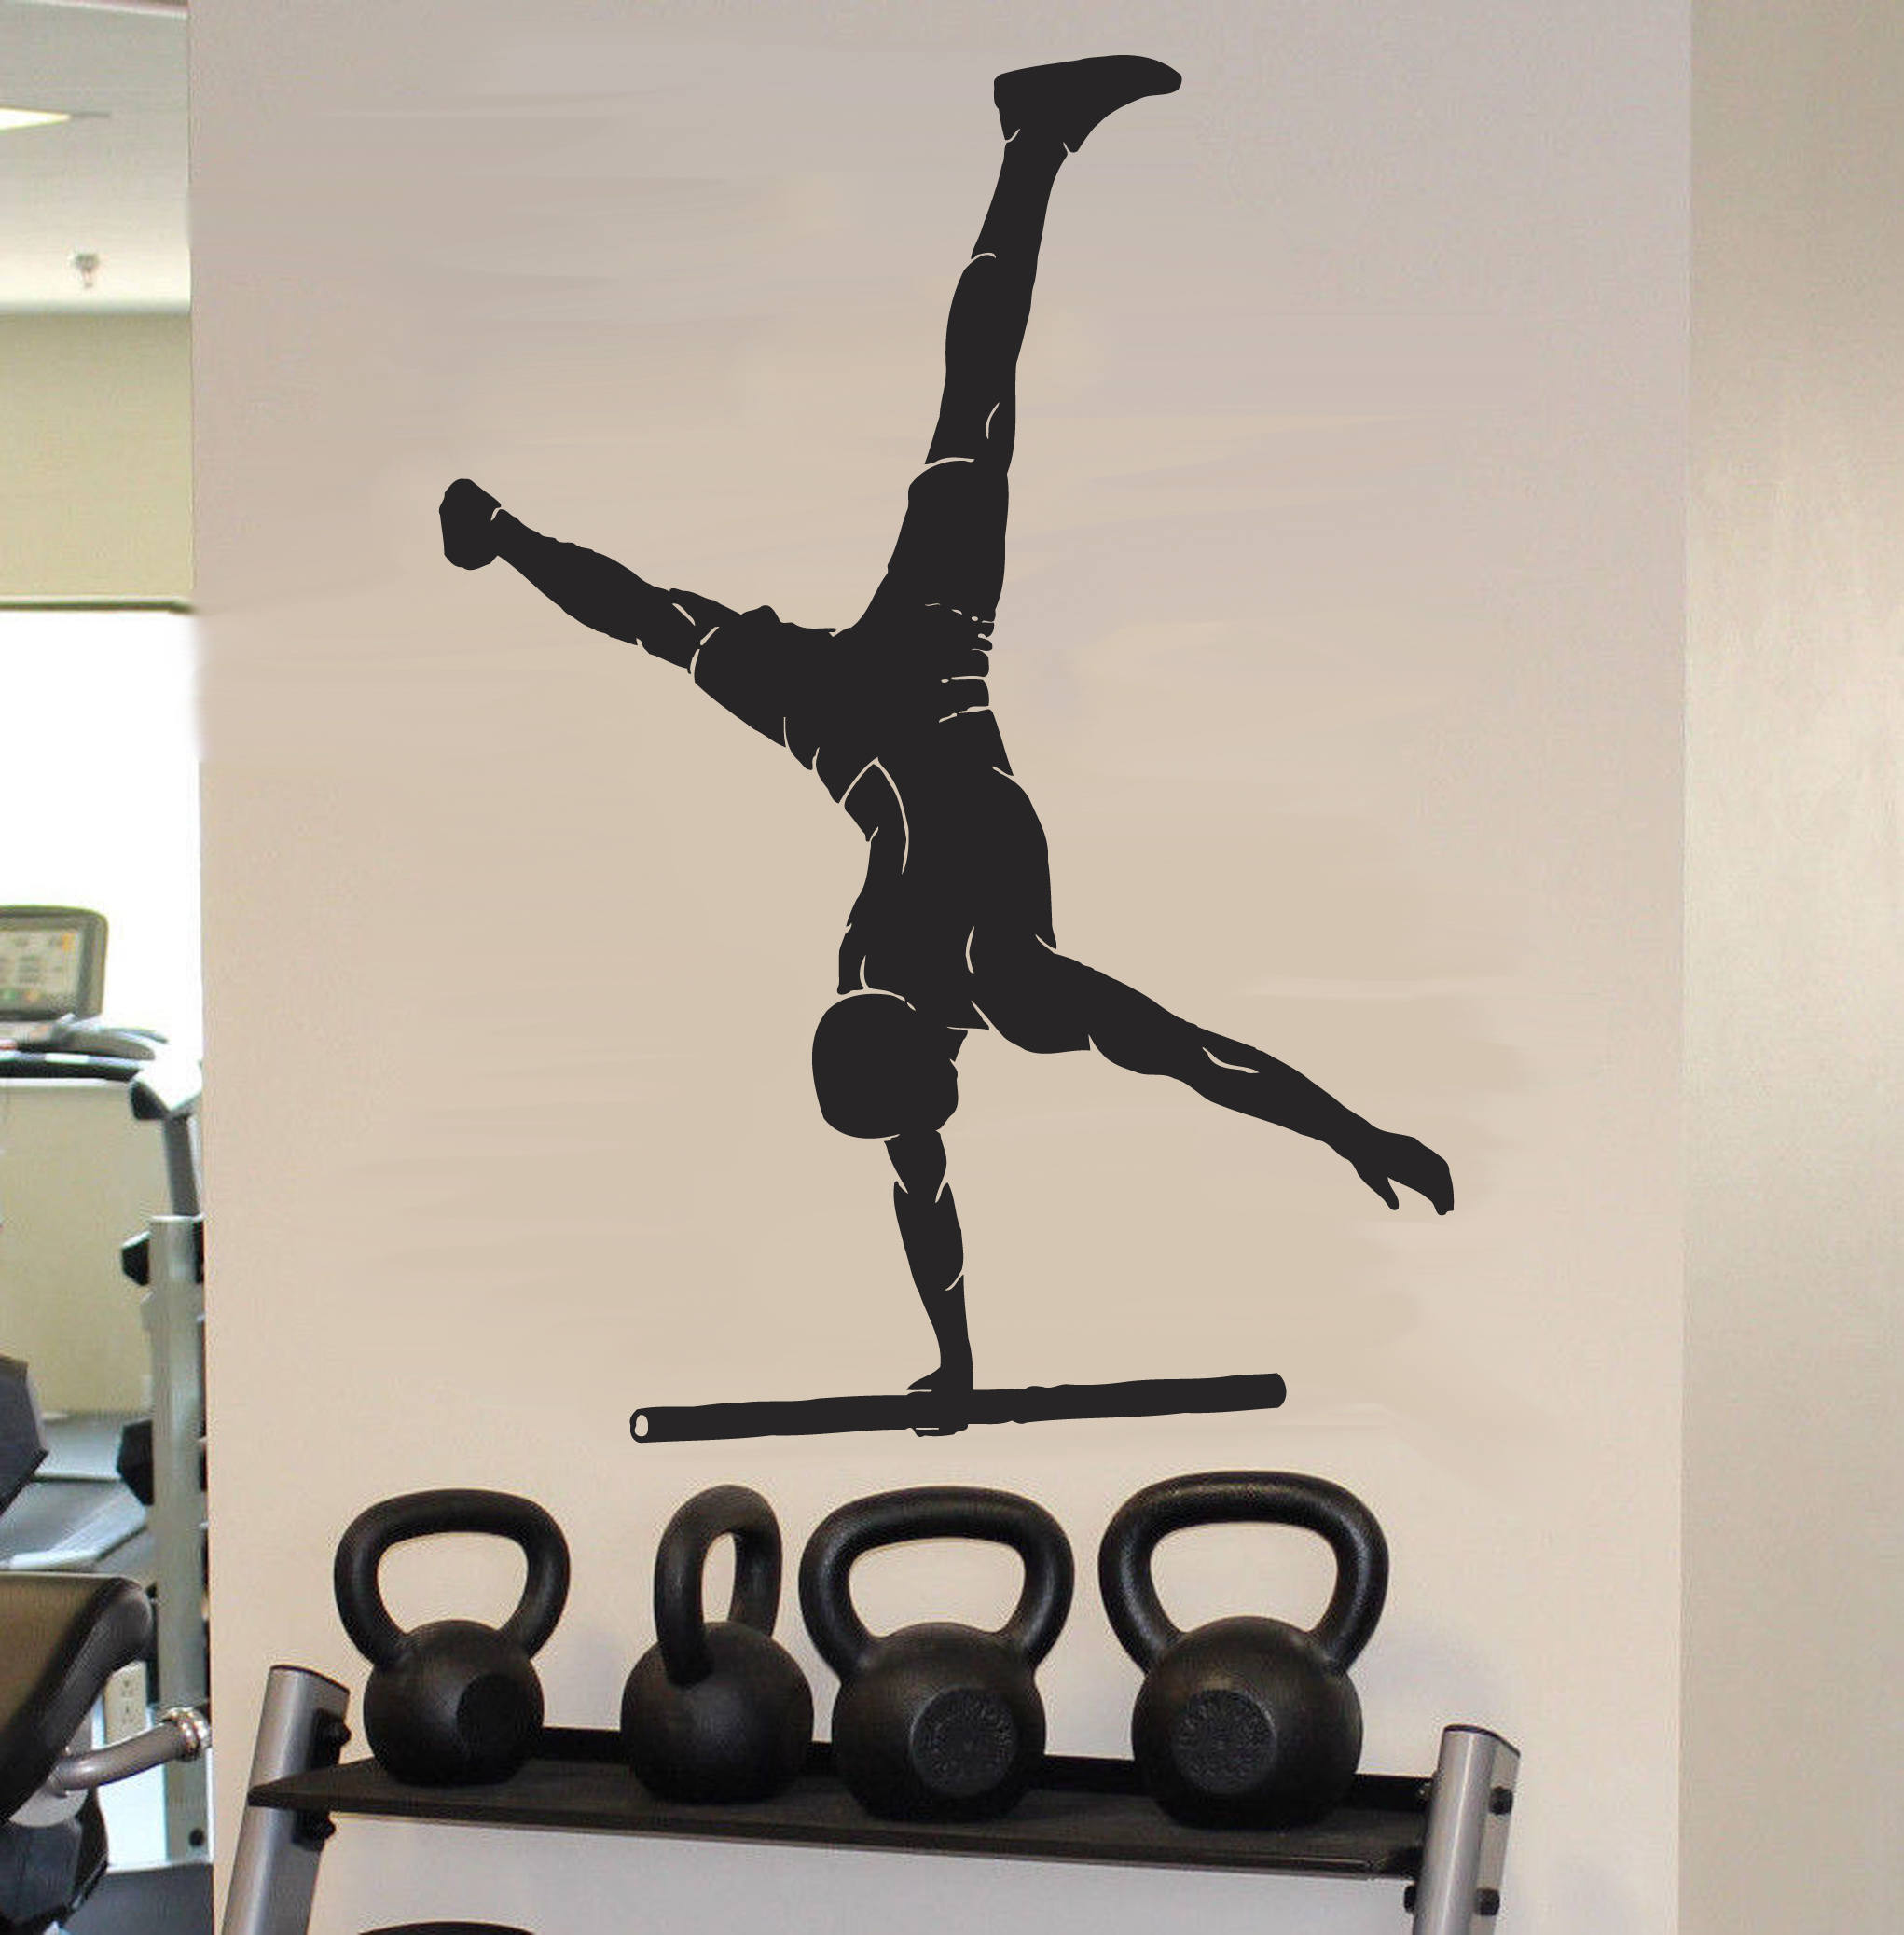 Street workout wall decal athlete performance wall sticker etsy